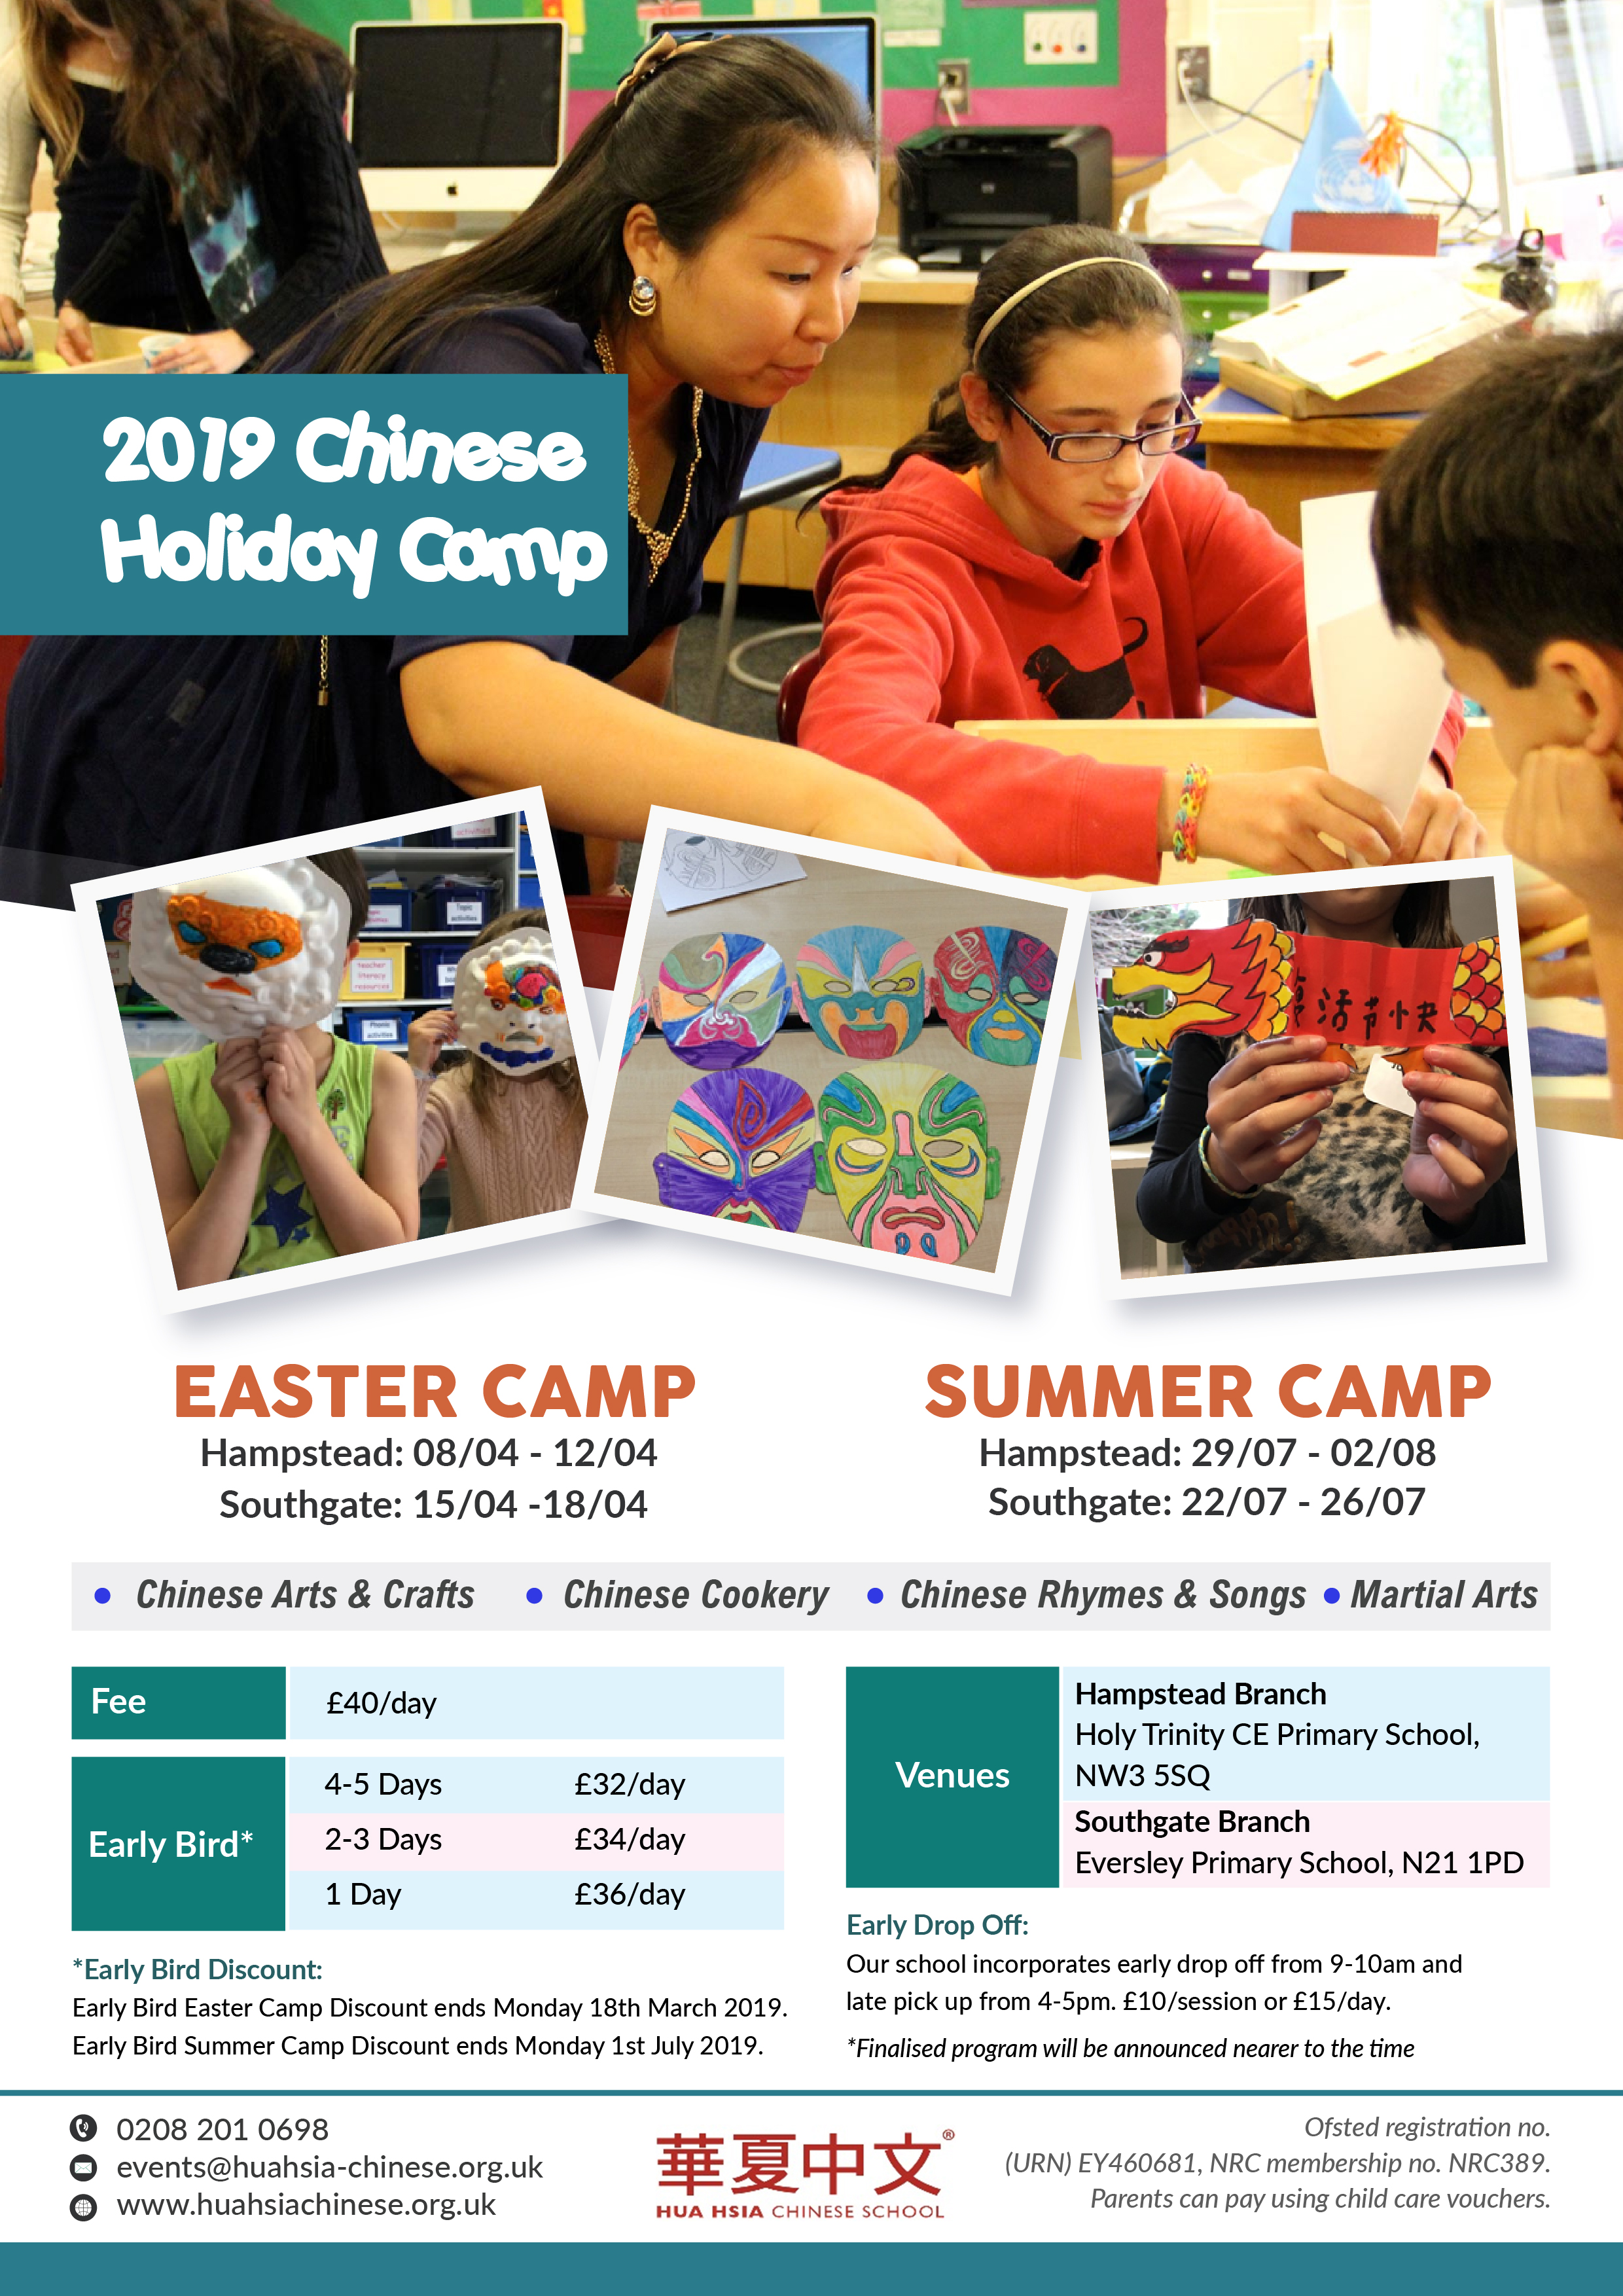 2019 Holiday Camp Flyer